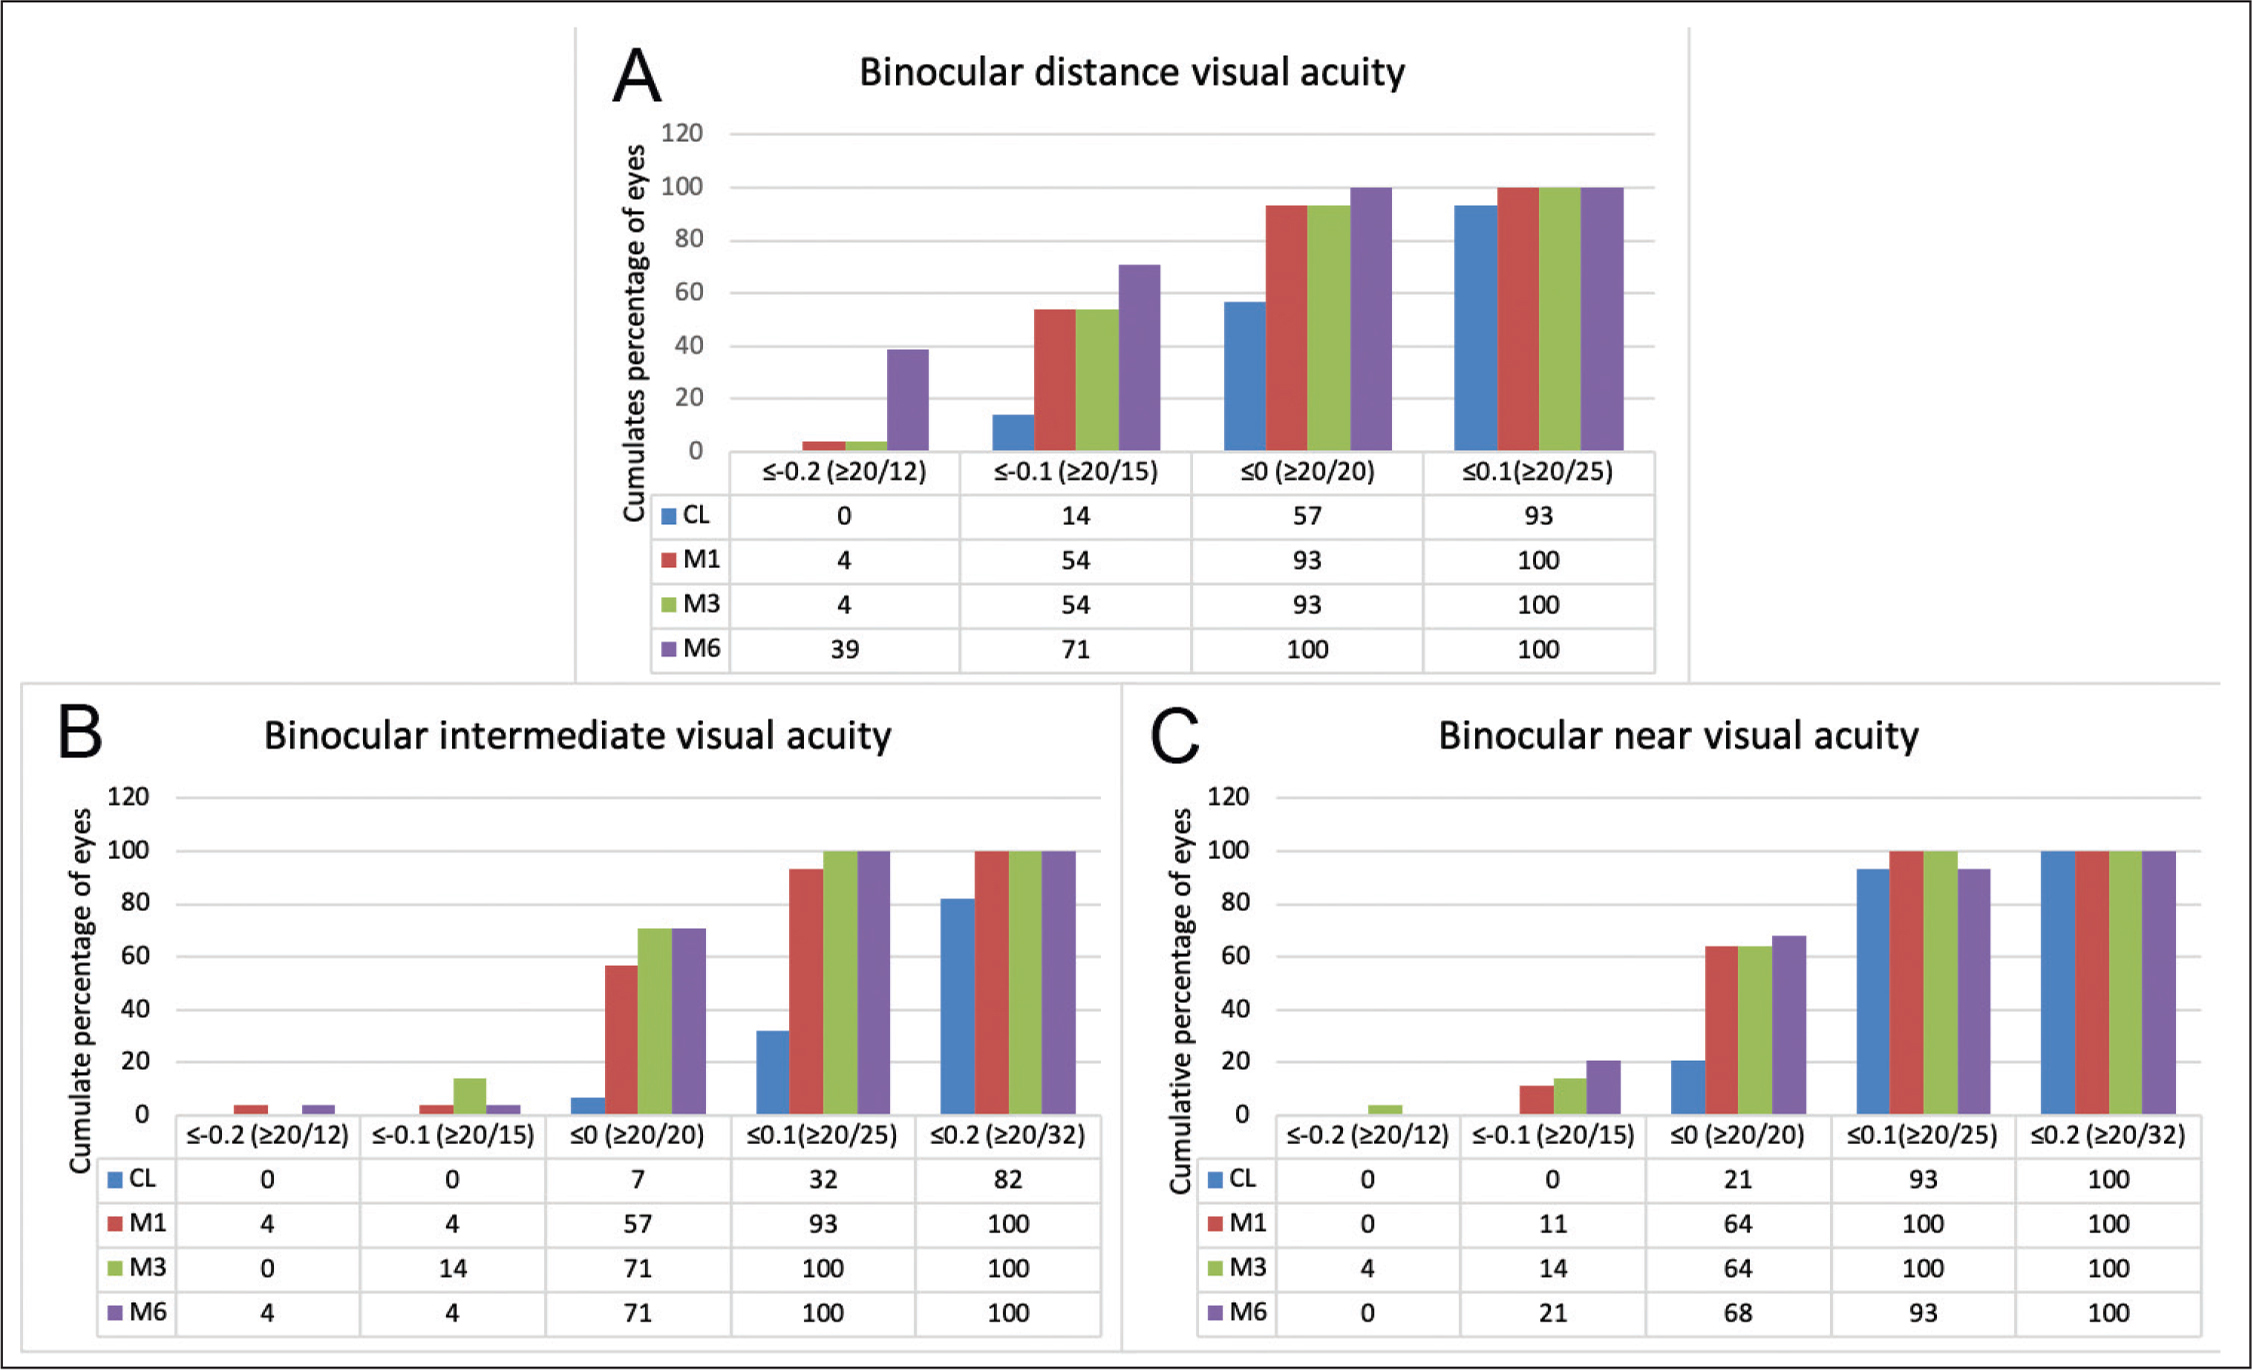 Changes in binocular (A) distance, (B) intermediate, and (C) near visual acuity following surgical treatment at 1 (in red), 3 (in green), and 6 (in purple) months postoperatively compared with contact lens wear (CL) simulating monovision preoperatively (in blue).